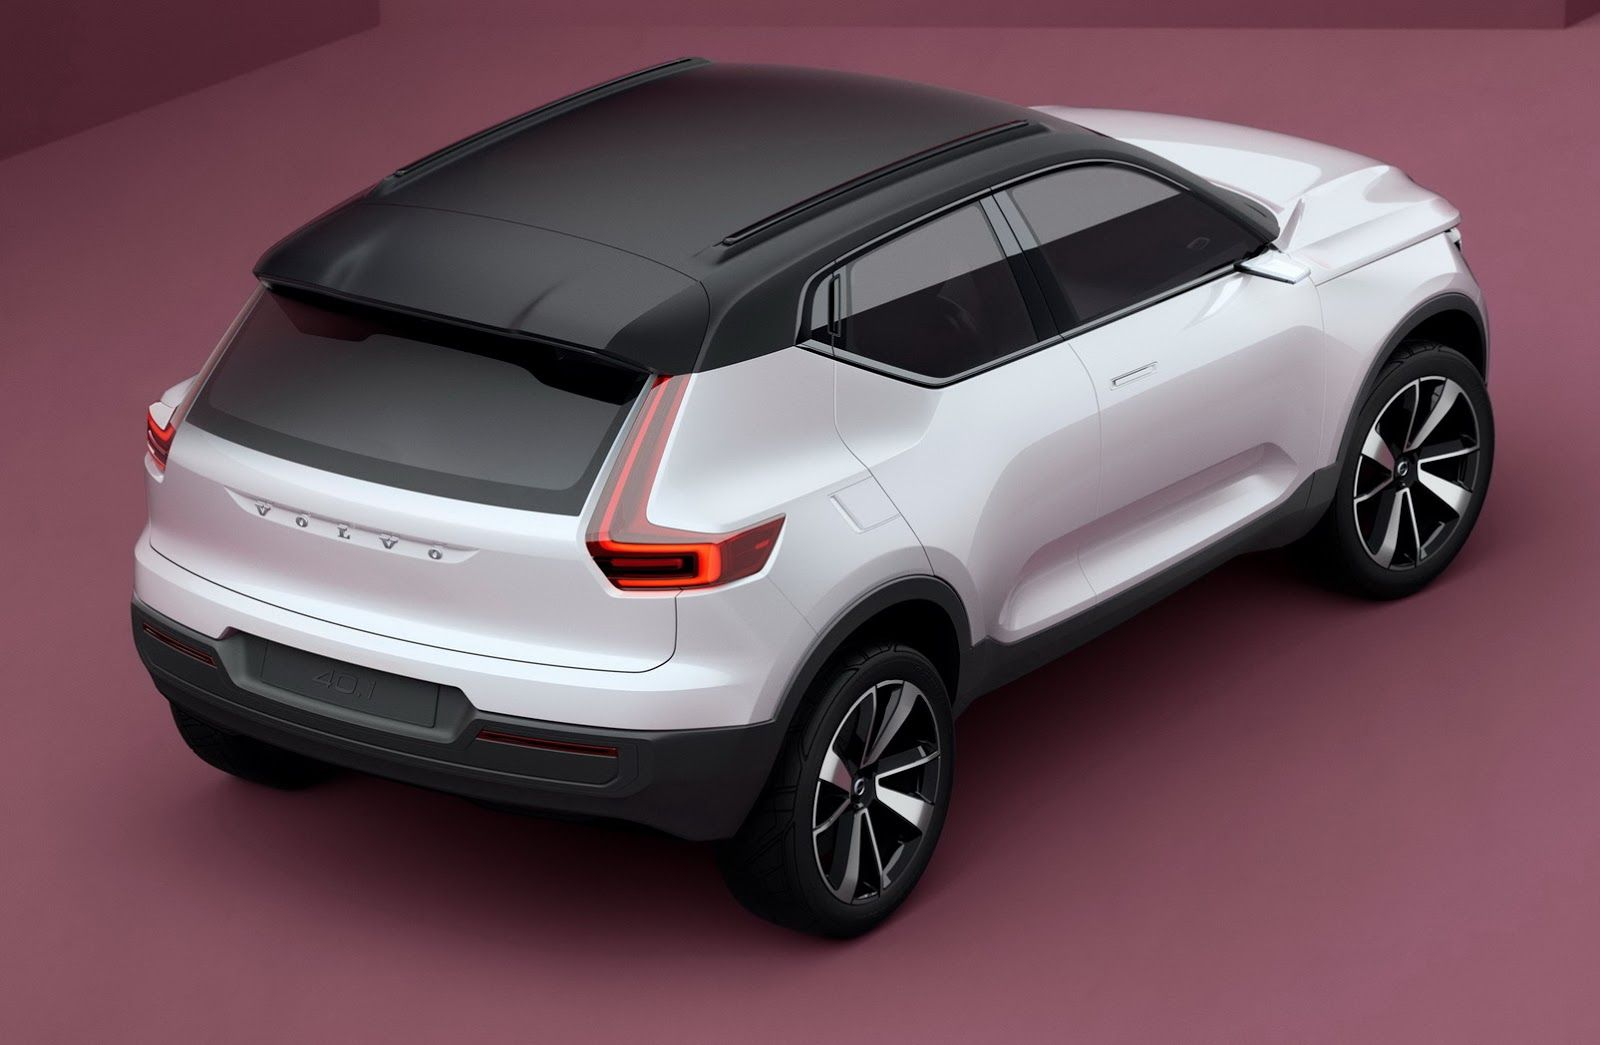 2017 Volvo Xc40 S40 Previewed With New Concepts With Promise Of Pure Ev Carscoops Volvo 40 Volvo Volvo V40